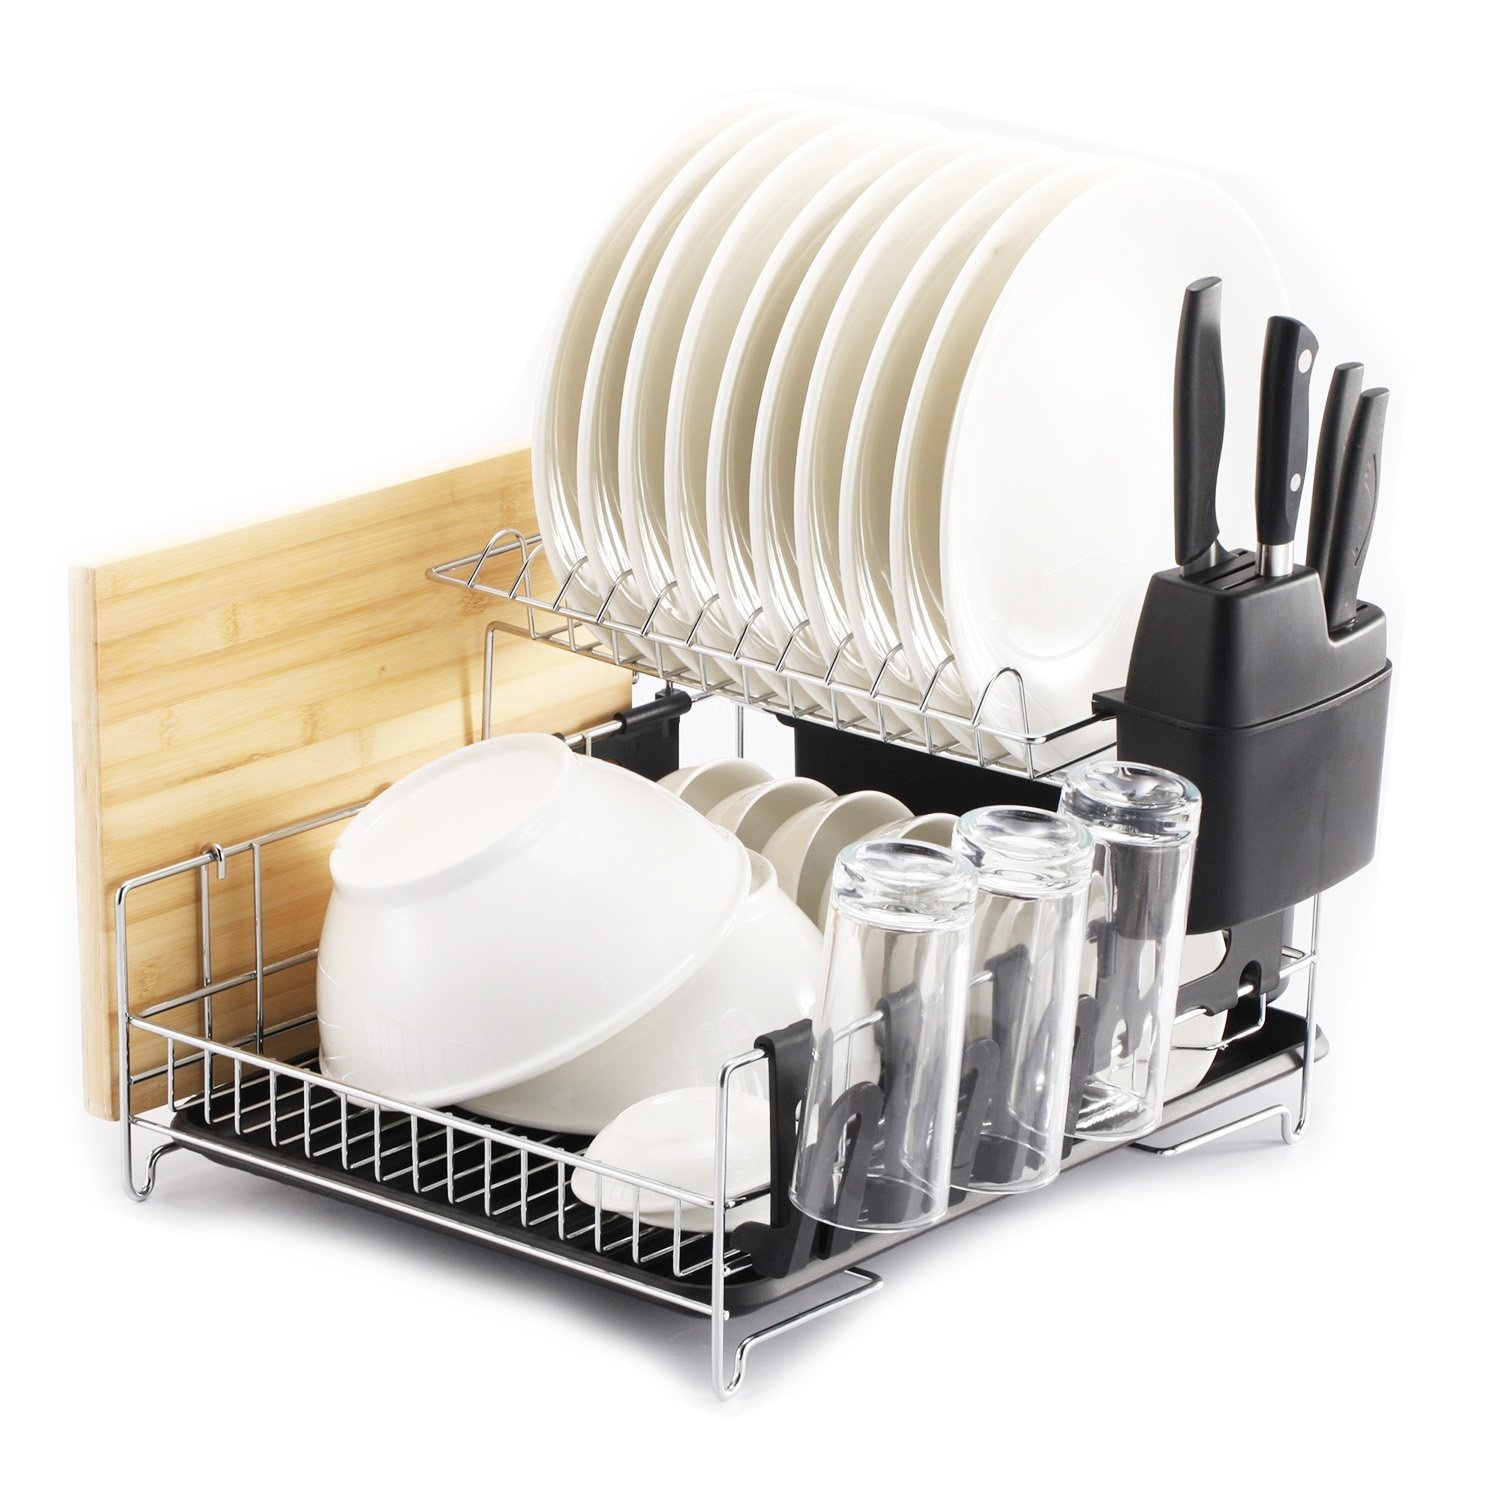 PremiumRacks Professional Dish Rack - 304 Stainless Steel - Fully Customizable - Microfiber Mat Included - Modern Design - Large Capacity by PremiumRacks